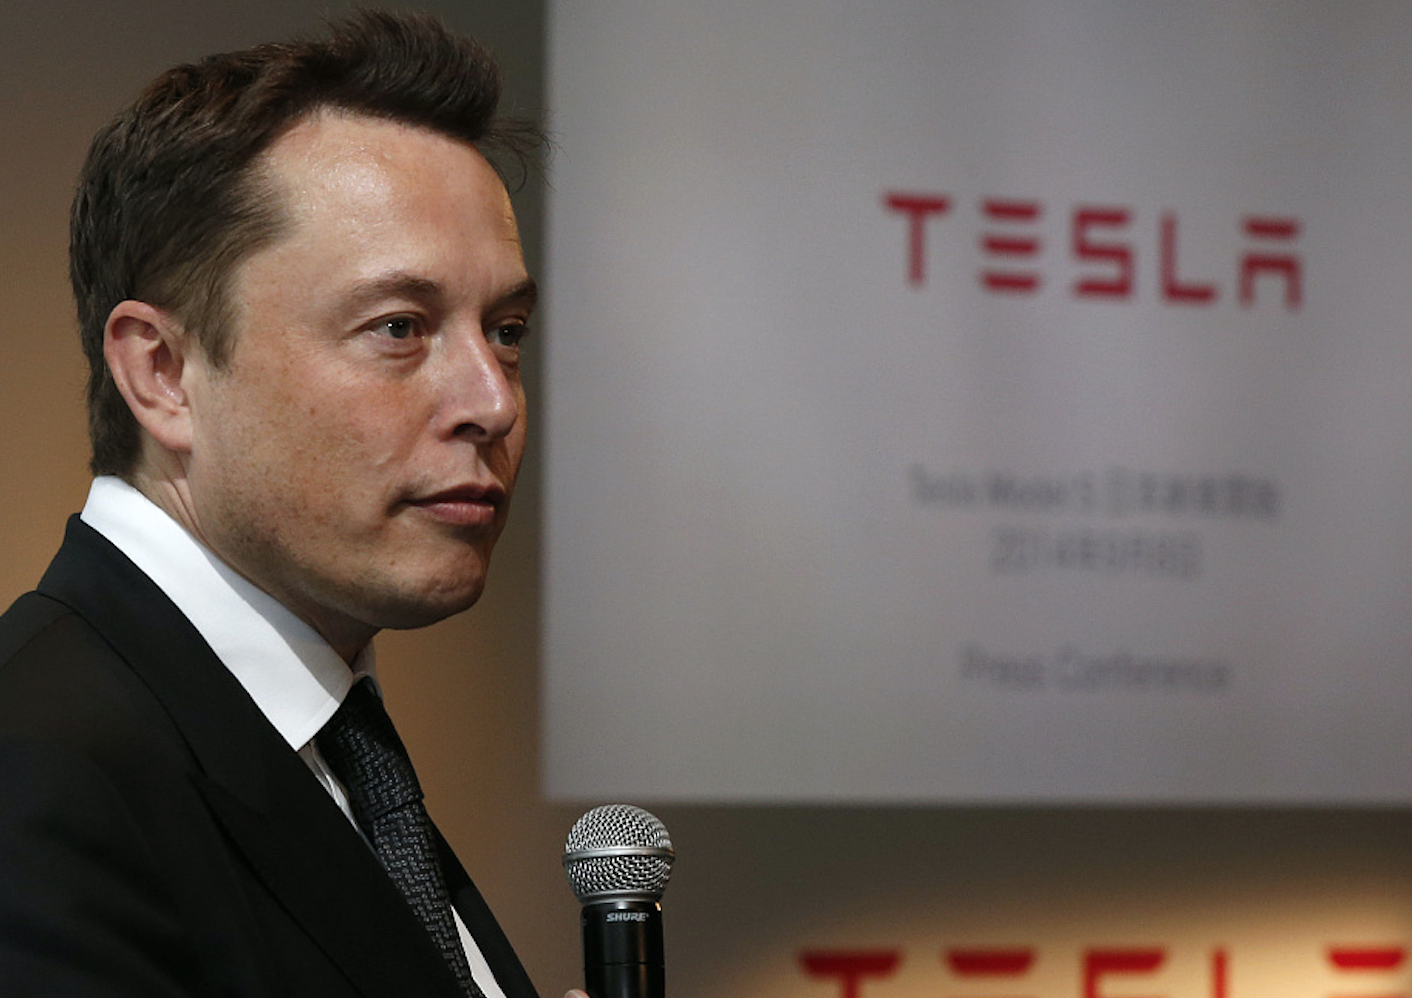 Musk AI nine forecast in 2017: it is the biggest threat to human civilization